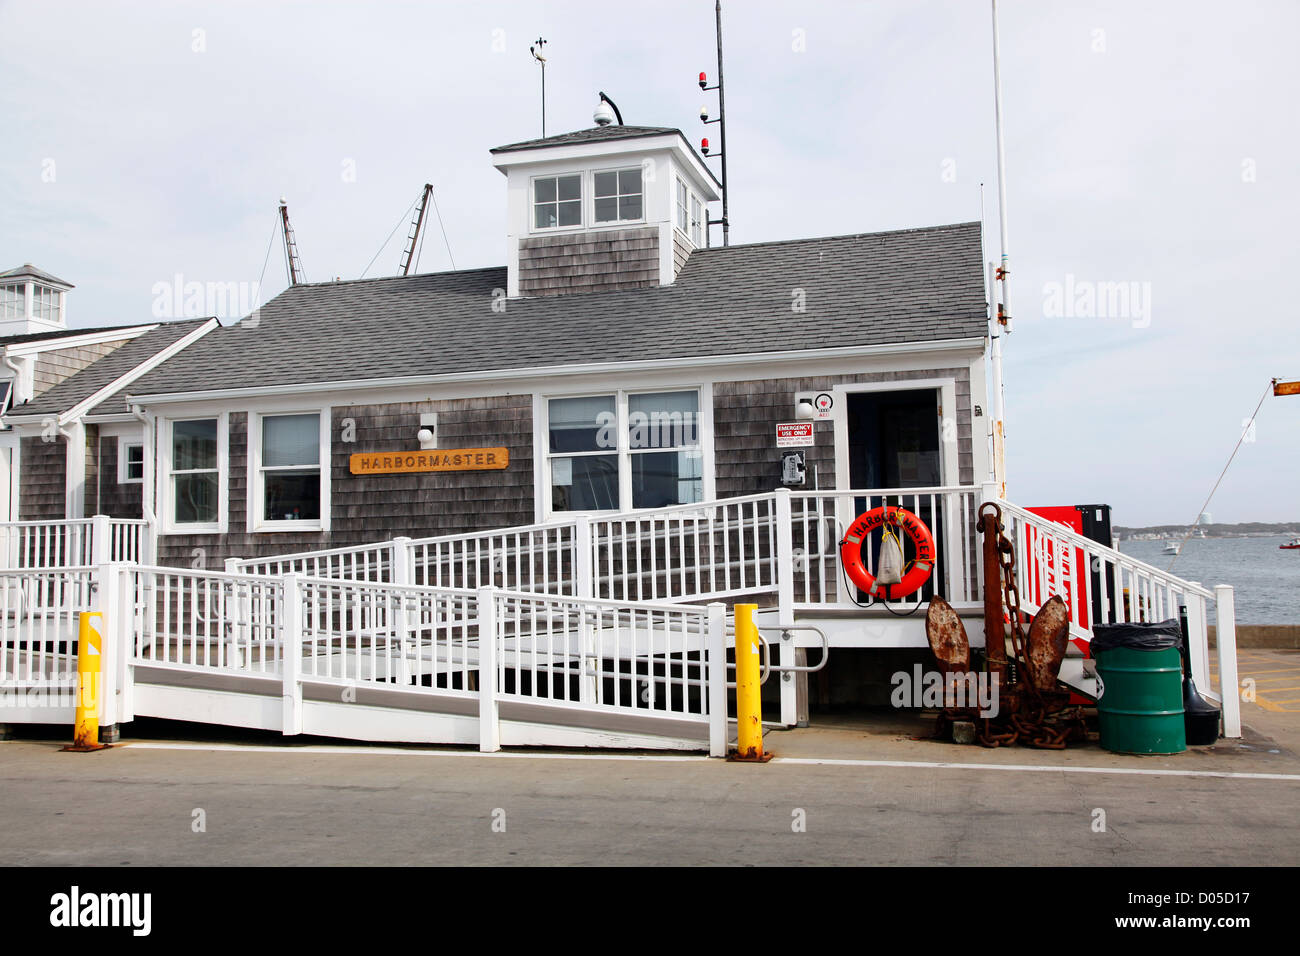 Harbourmaster house, Provincetown, Cape Cod, Massachusetts, America - Stock Image